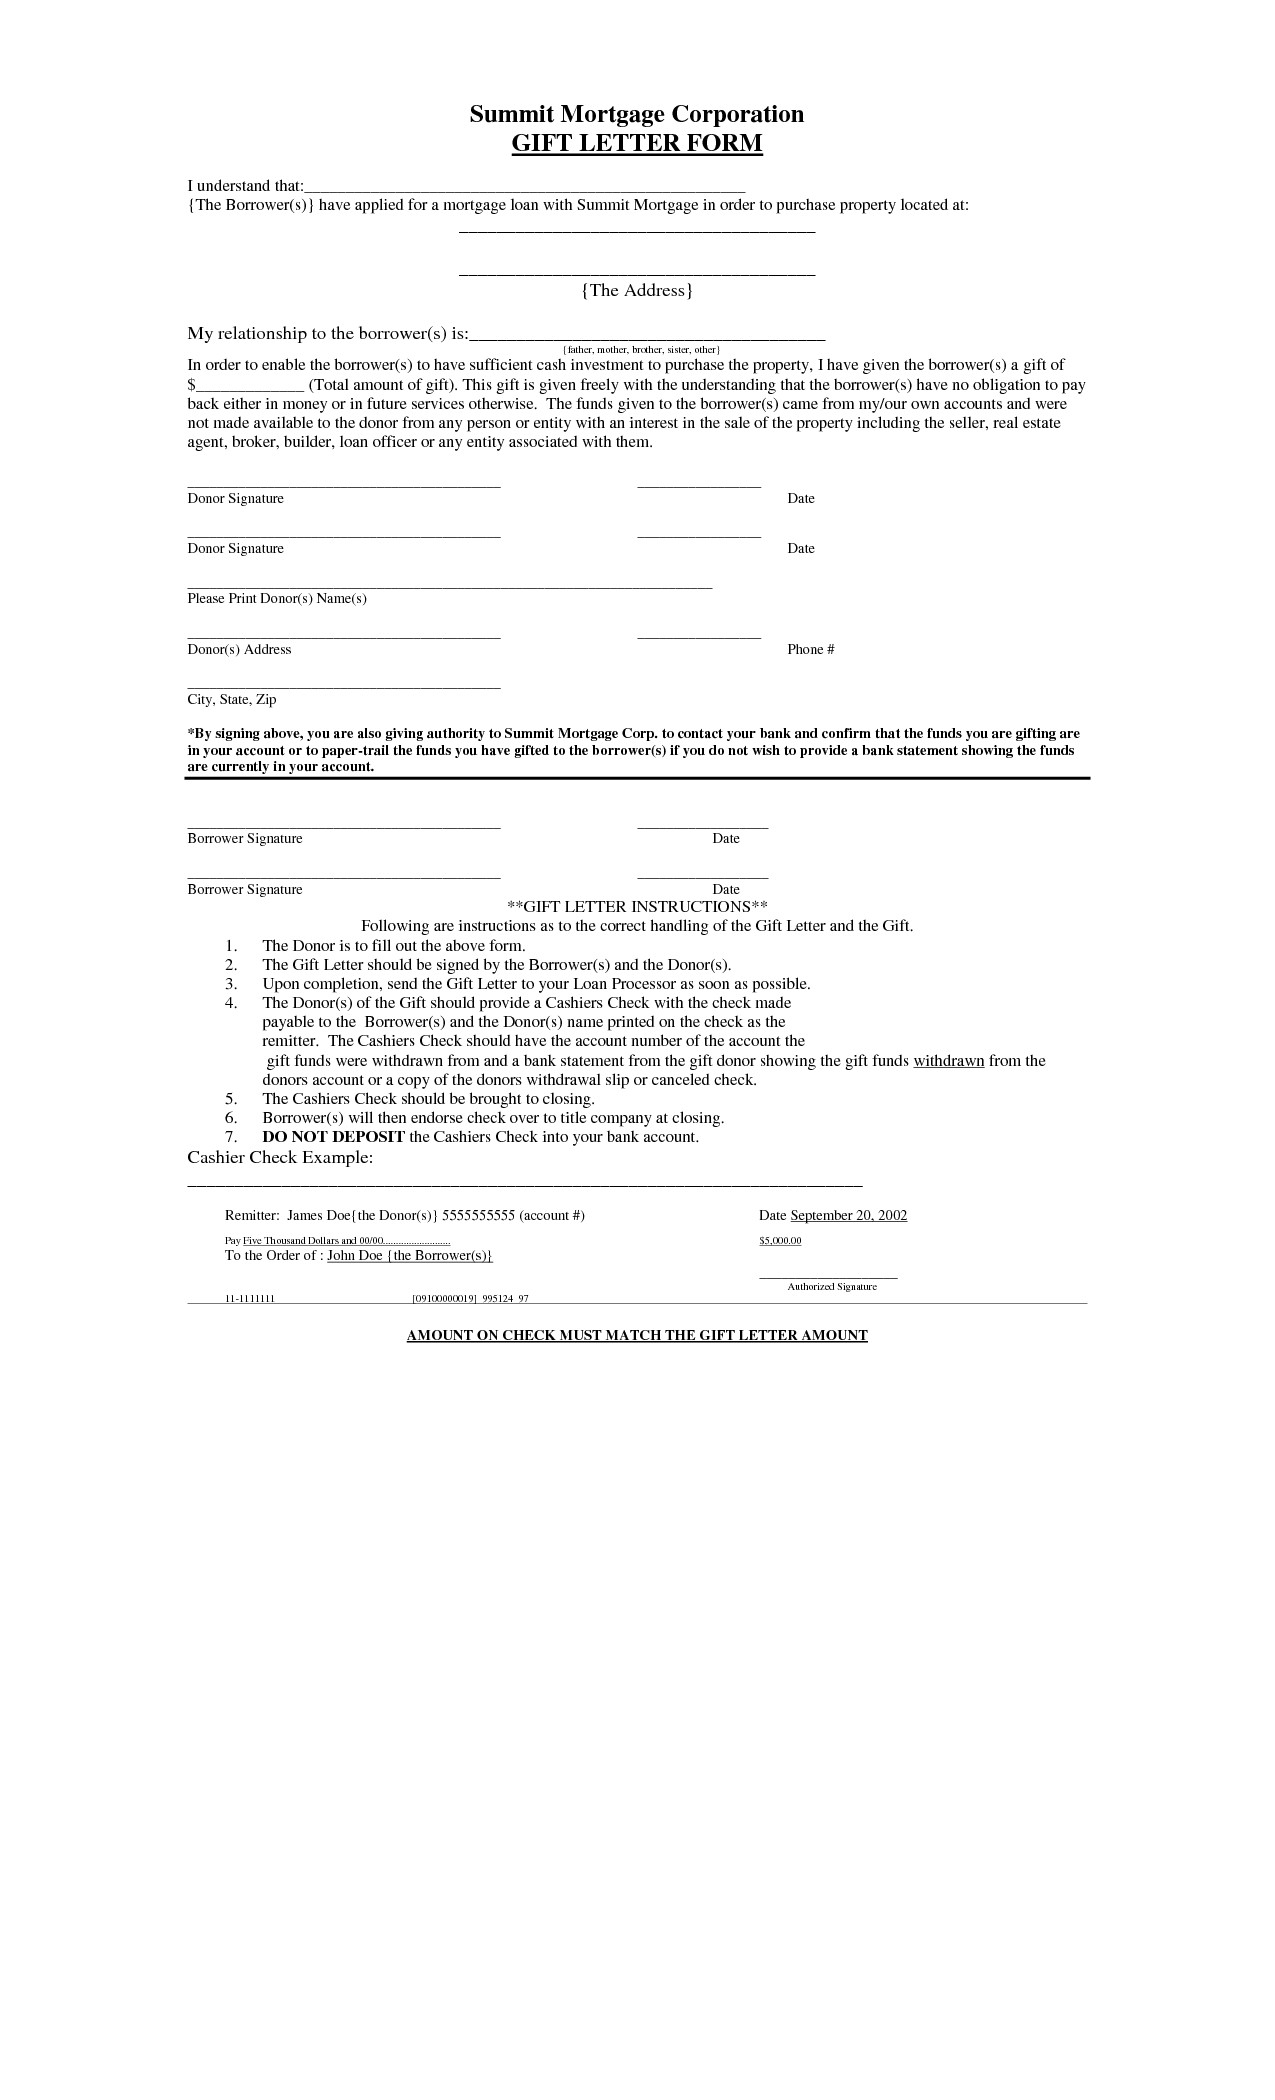 Fha Gift Letter Template - How to Write A Gift Letter for A Car Choice Image Letter format